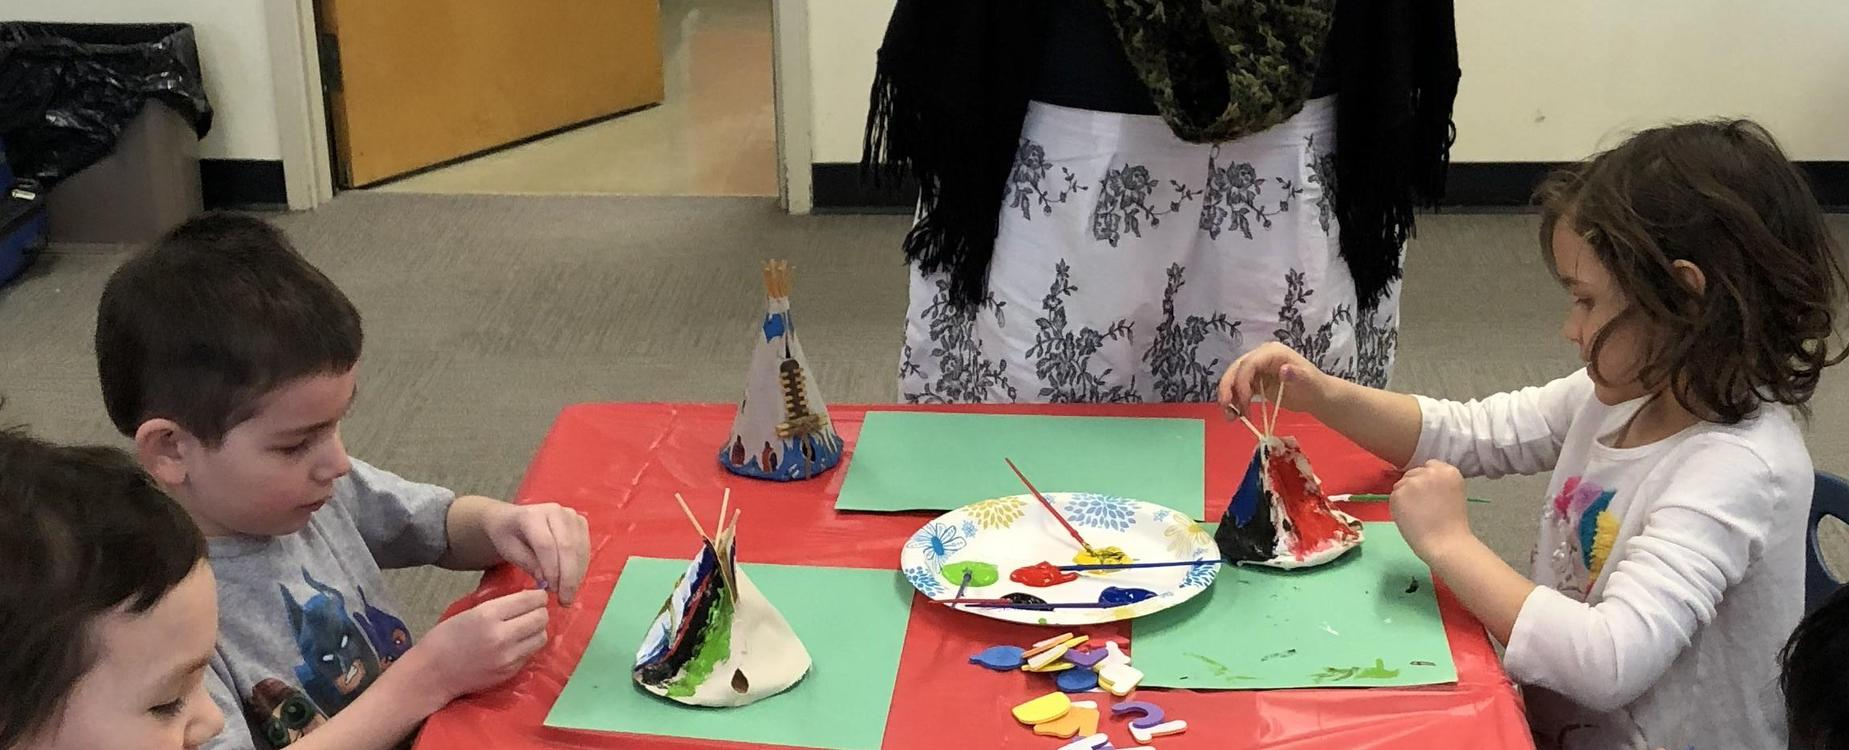 children painting teepees